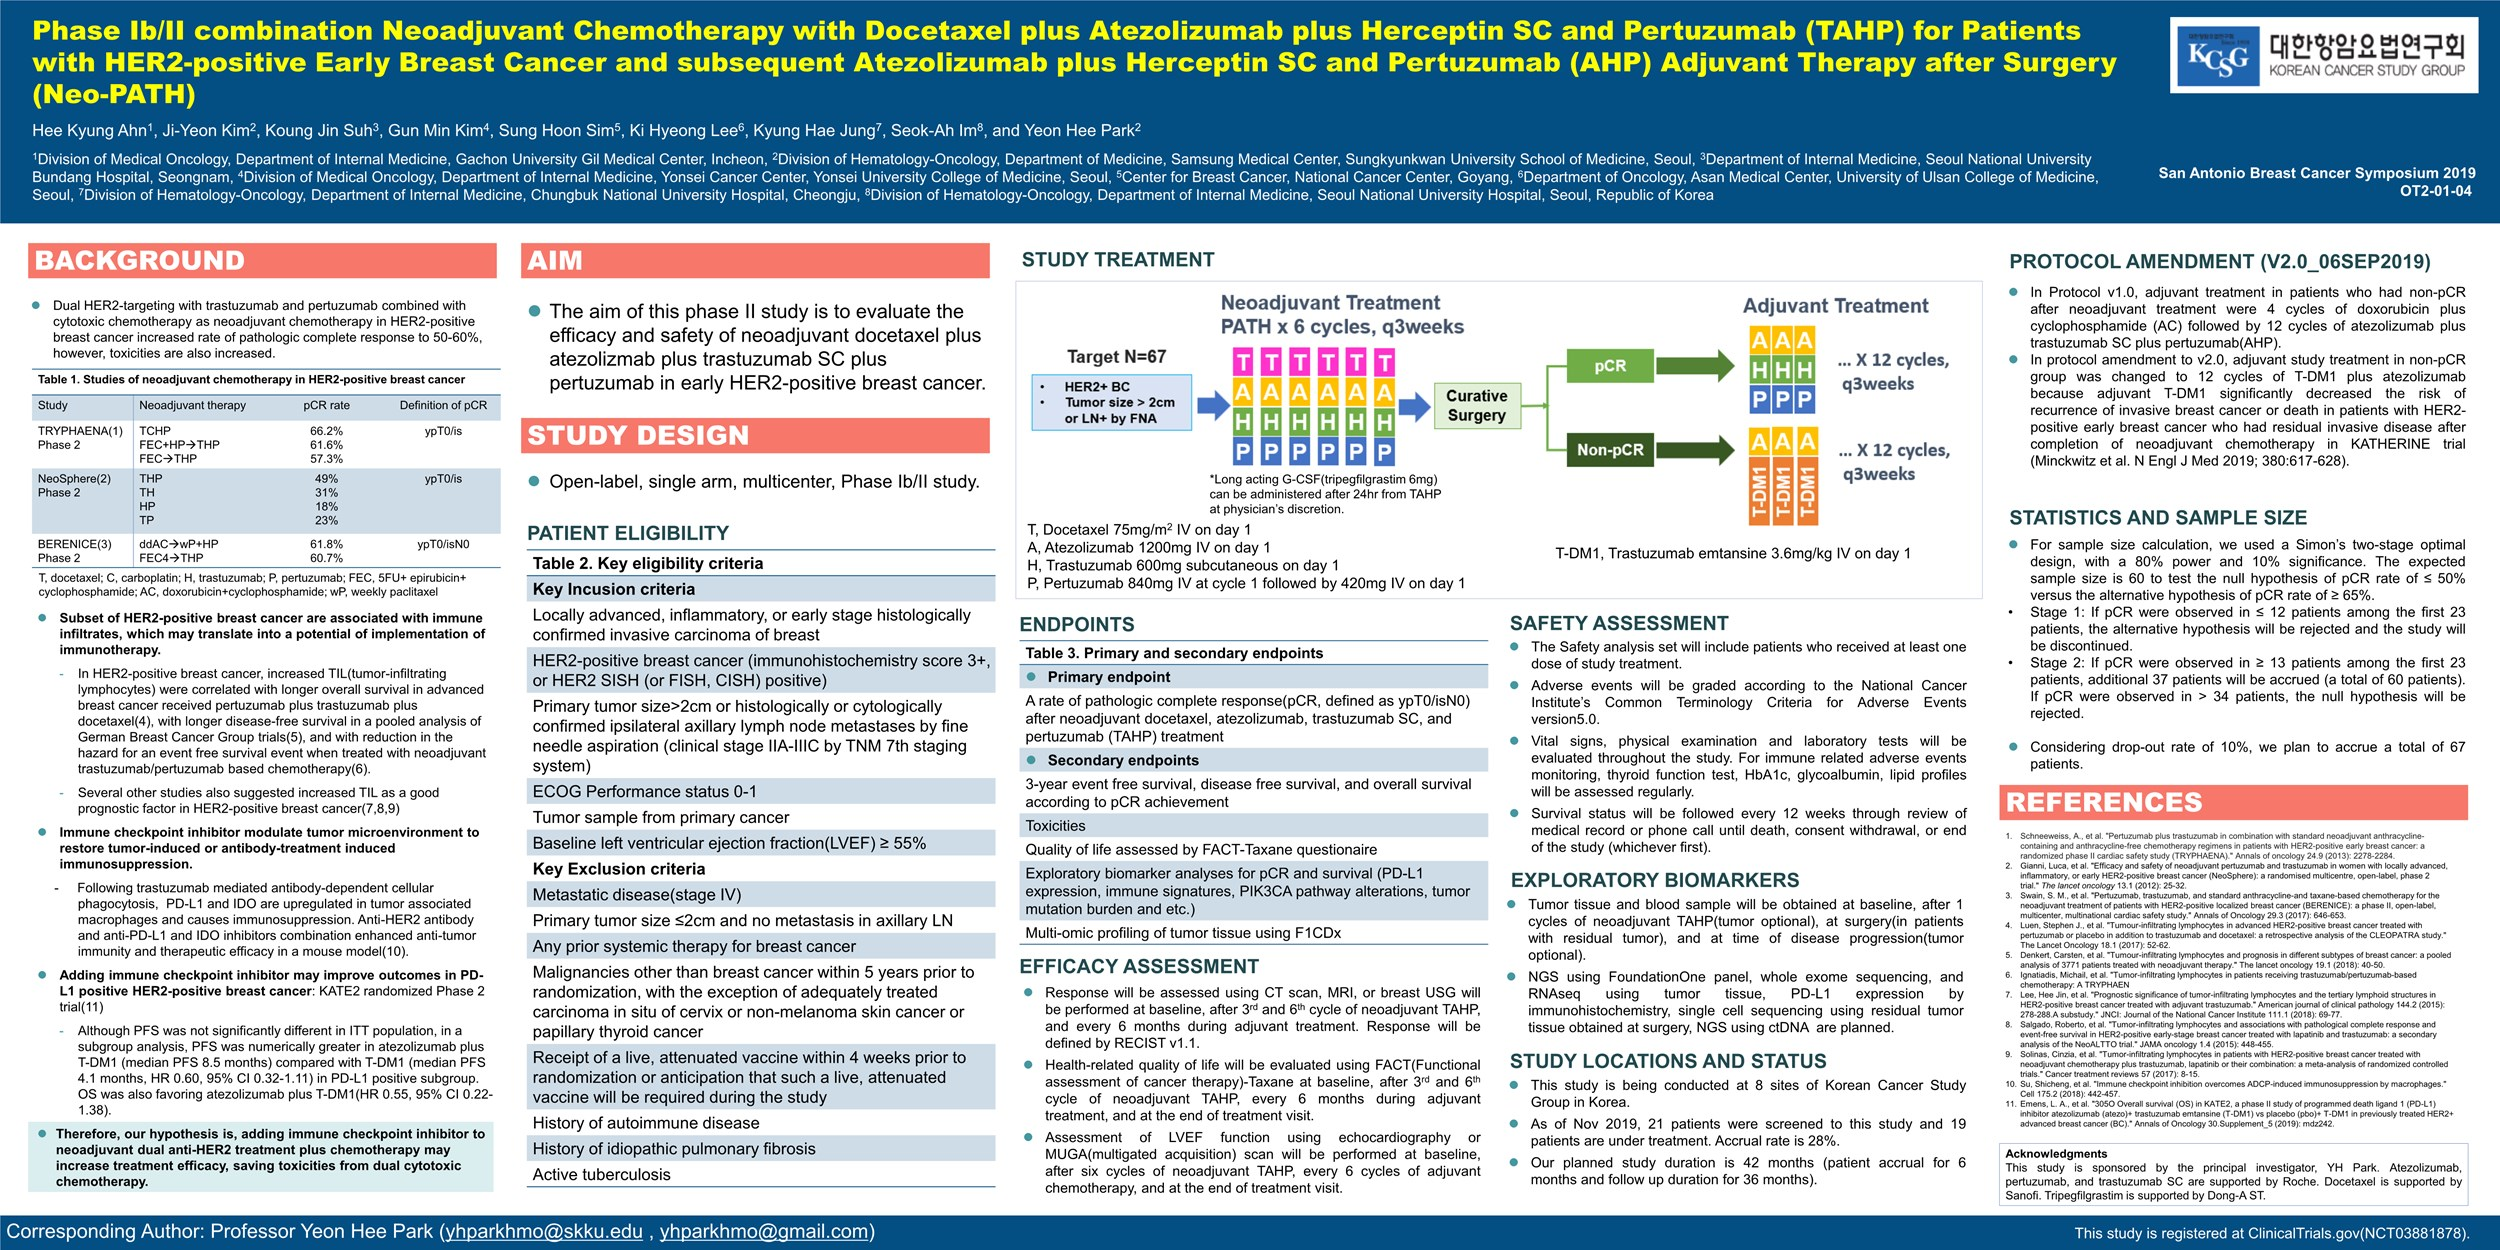 Phase IB-II combination neoadjuvant chemotherapy with docetaxel plus atezolizumab plus herceptin SC and pertuzumab (TAHP) for patients with HER2-positive early breast cancer and subsequent atezolizumab plus herceptin SC and pertuzumab (AHP) adjuvant therapy after surgery (Neo-PATH)